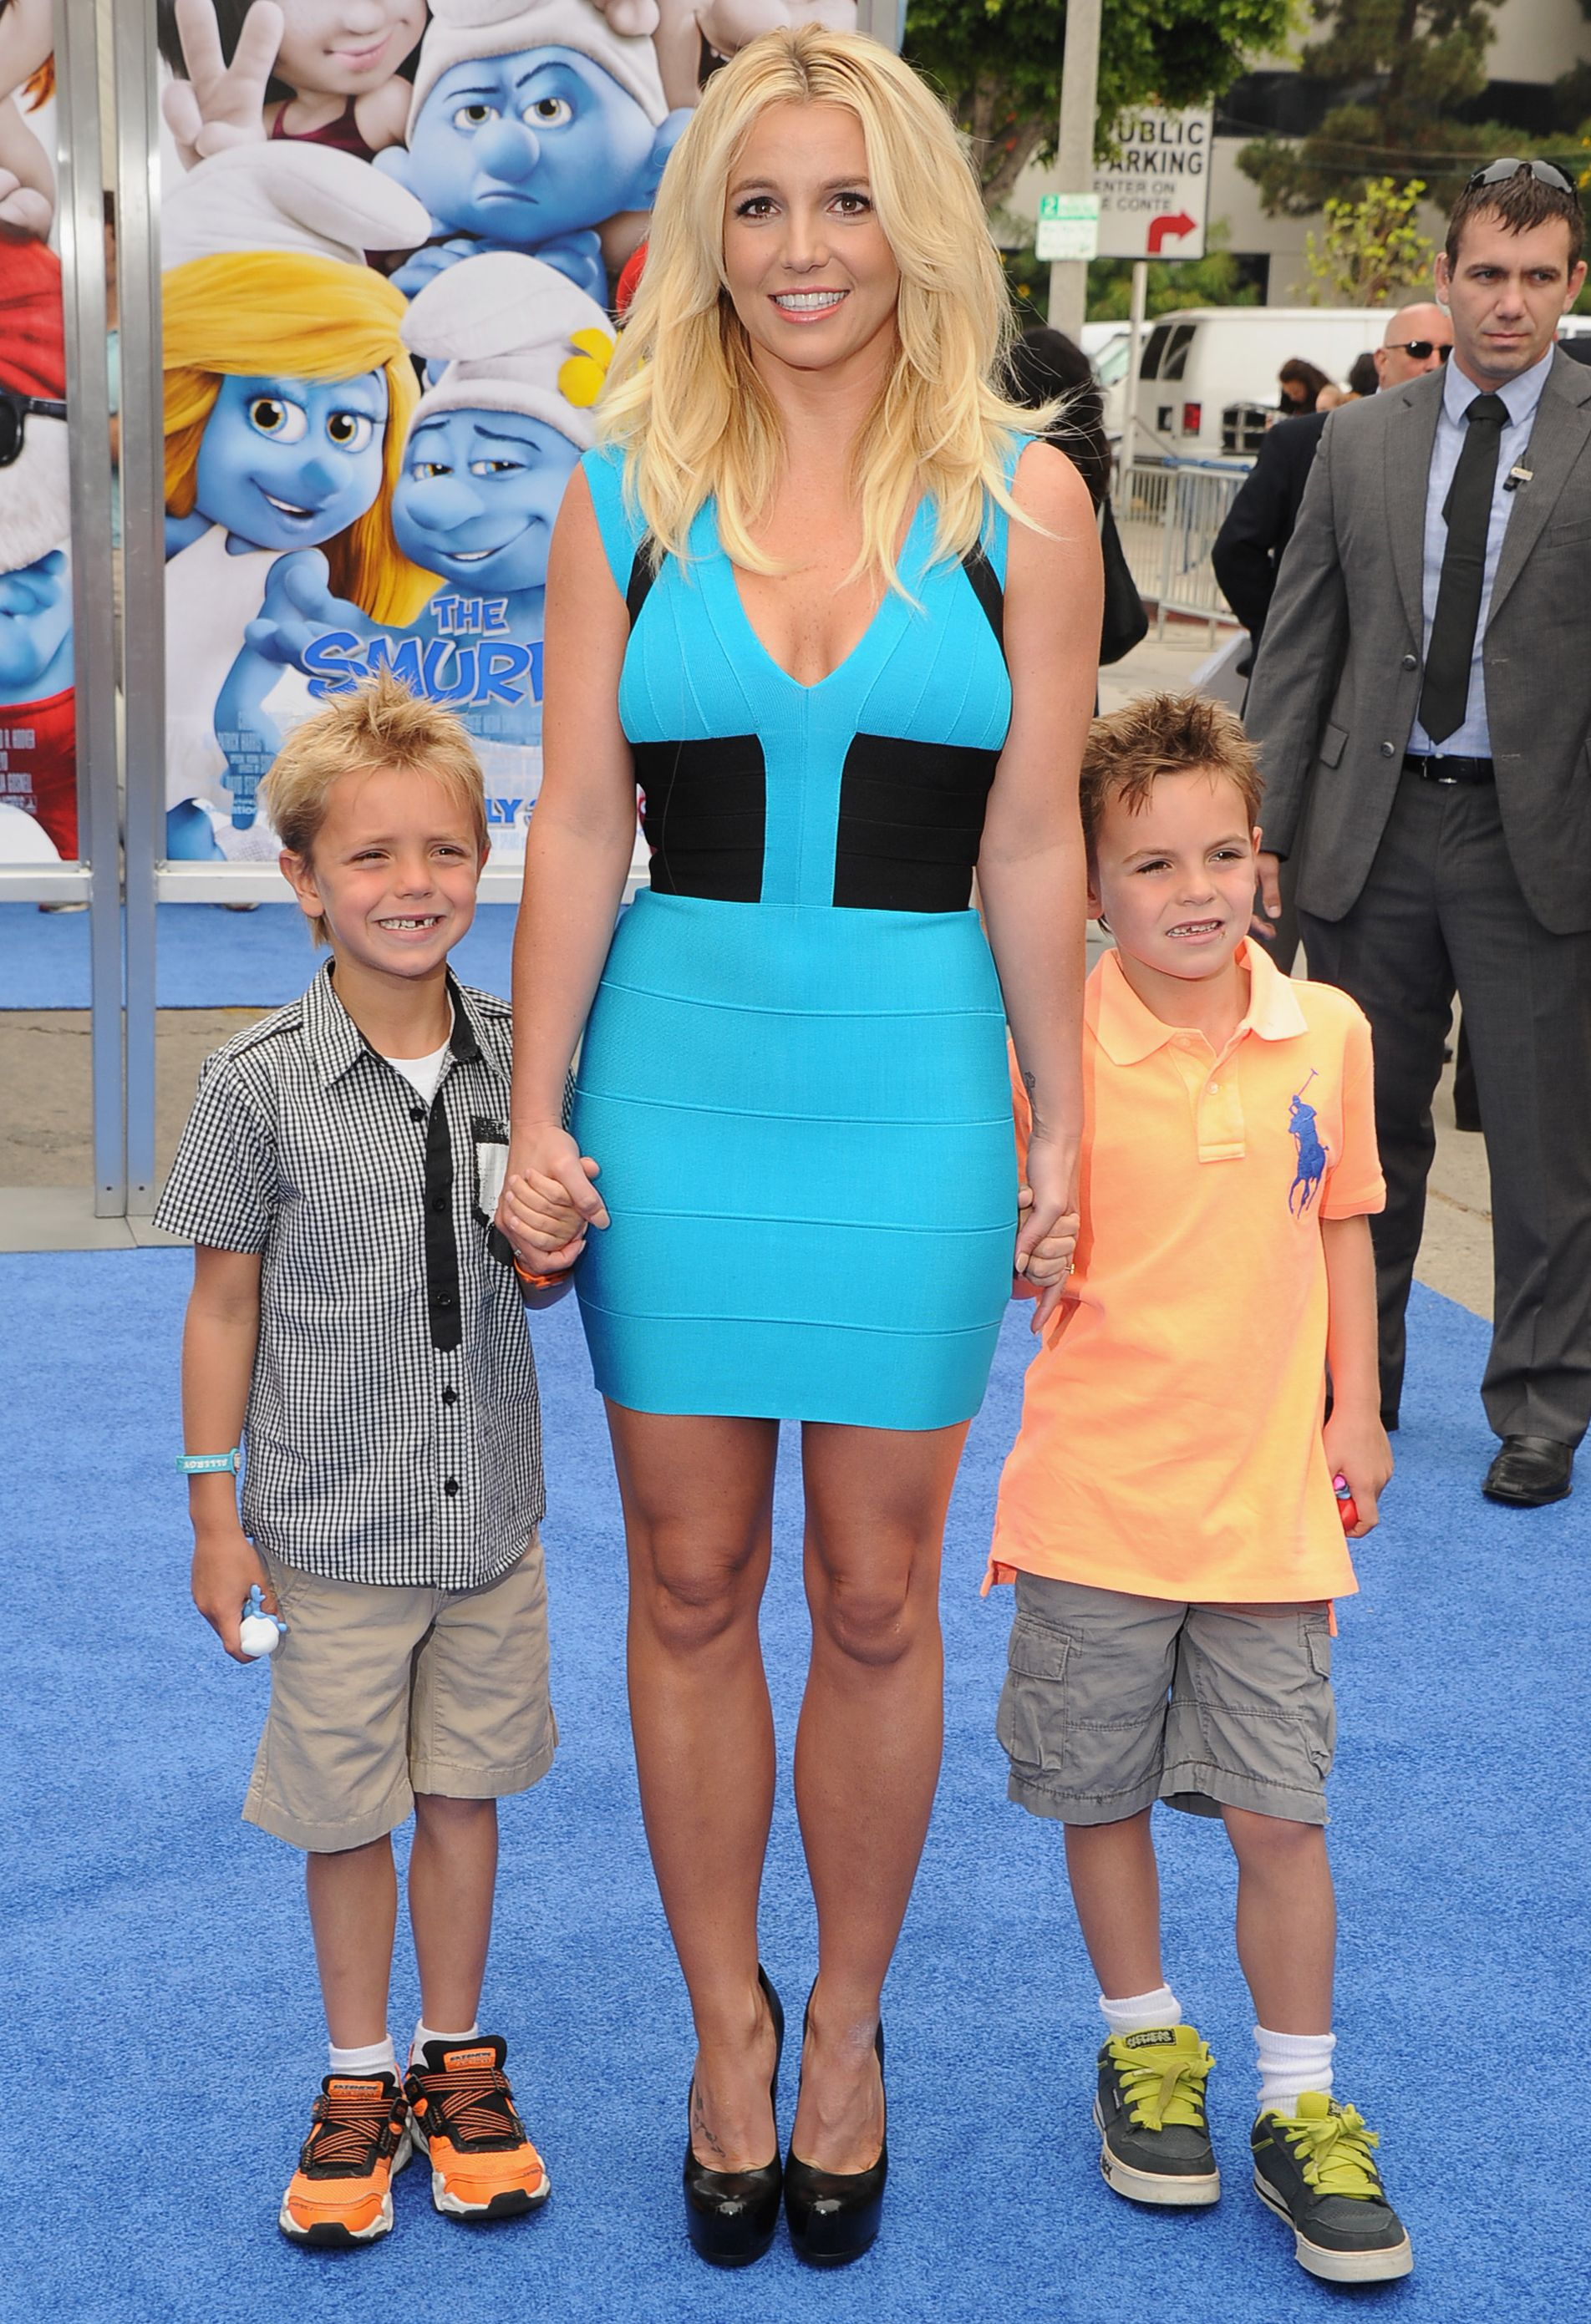 Britney Spears and her sons at 'The Smurfs' premiere